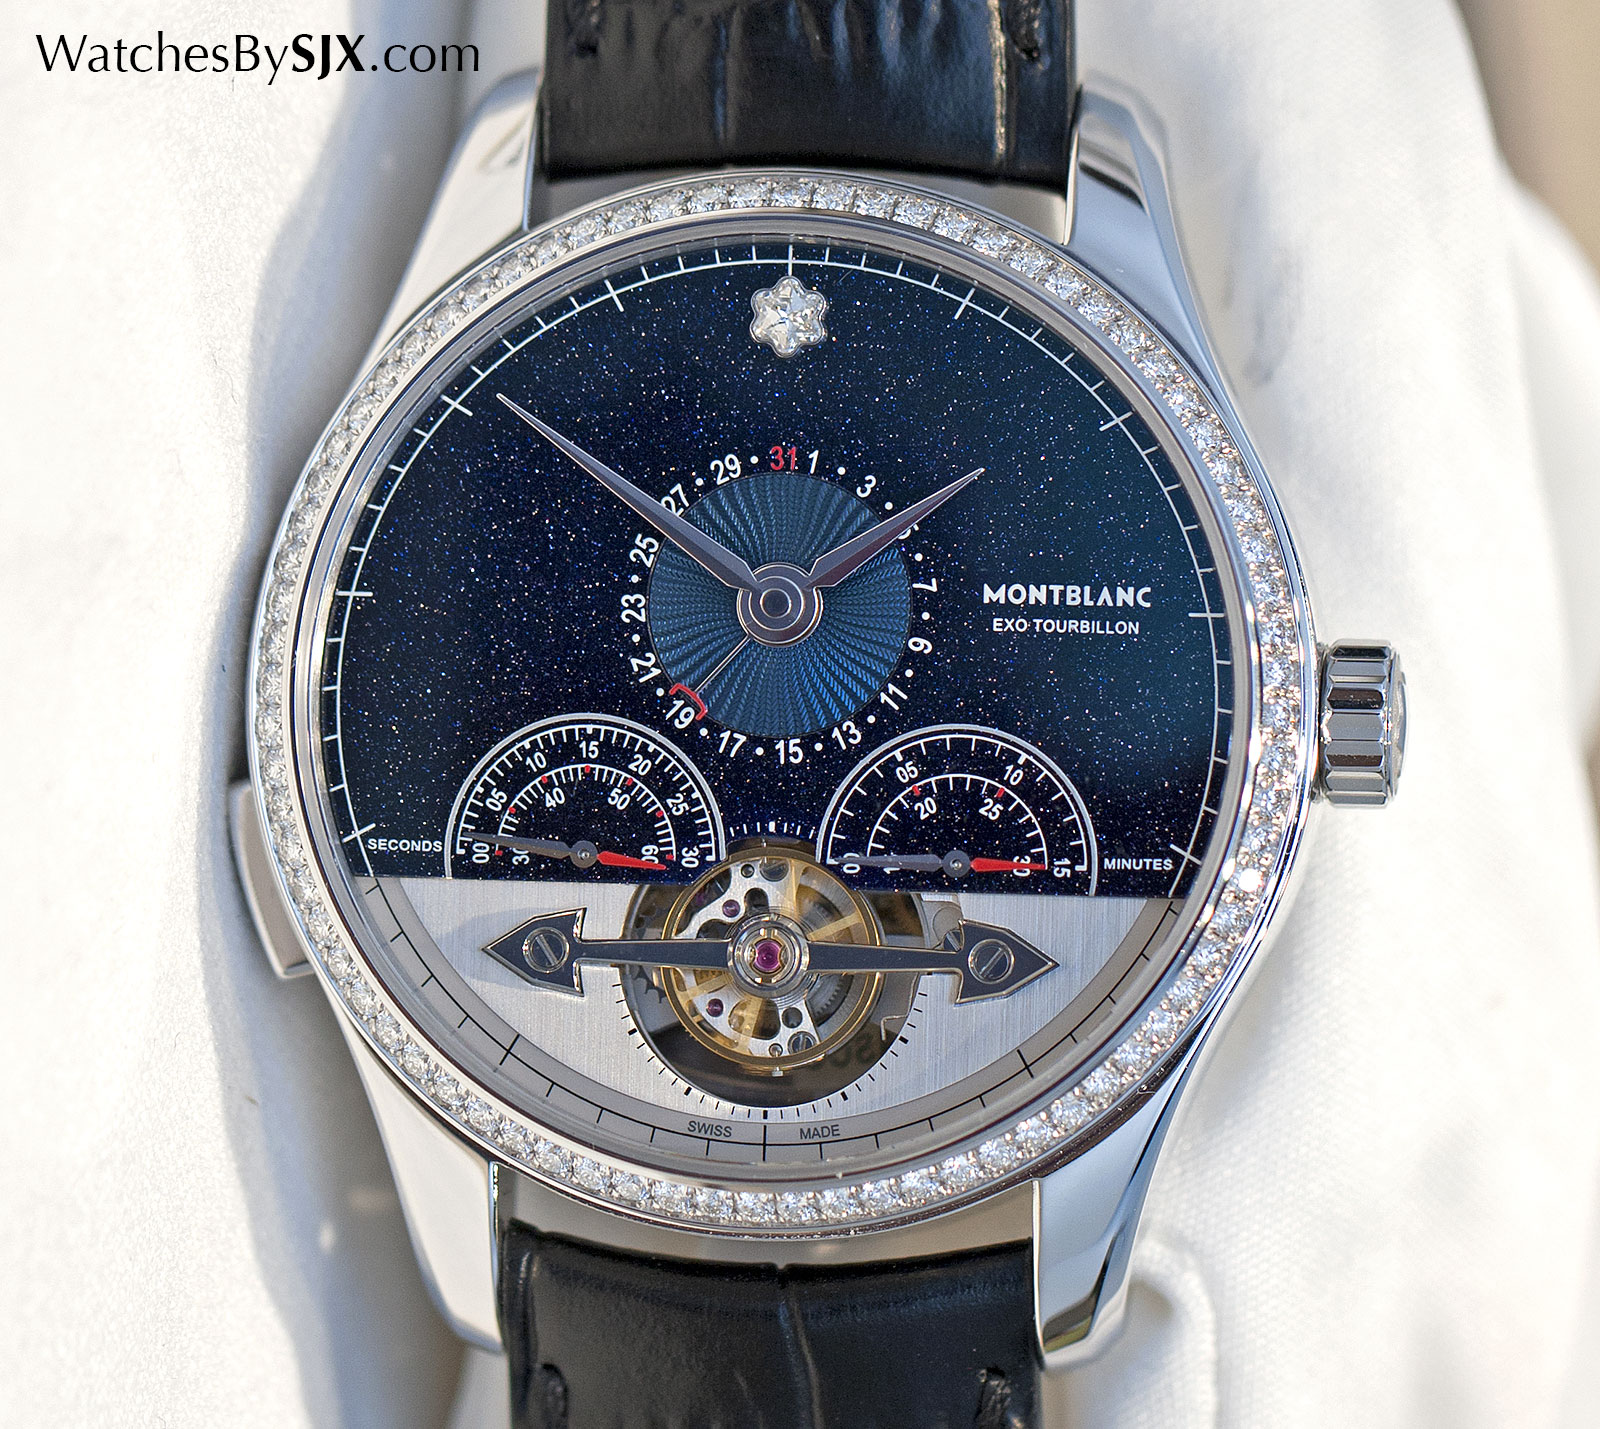 Montblanc Heritage Vasco Da Gama Watches By Sjx Montblanc Adds Sparkle To Its Entry Level